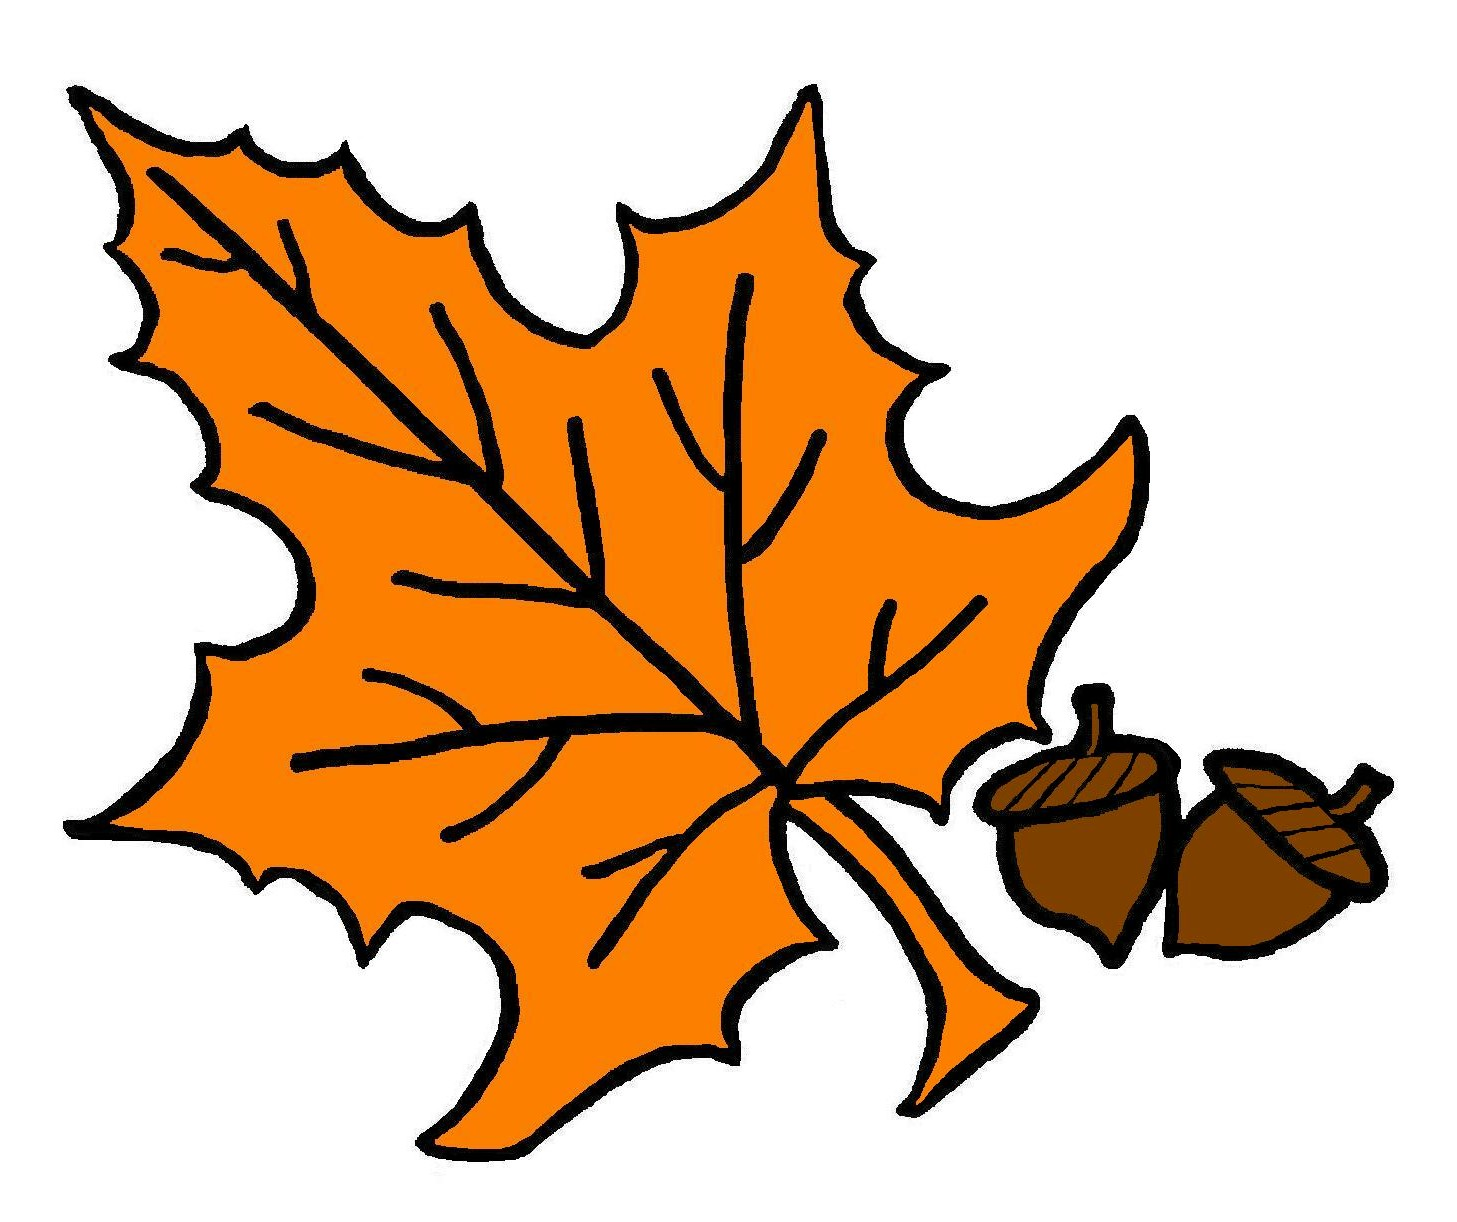 Fall leaves fall leaf clipart no background free images 2